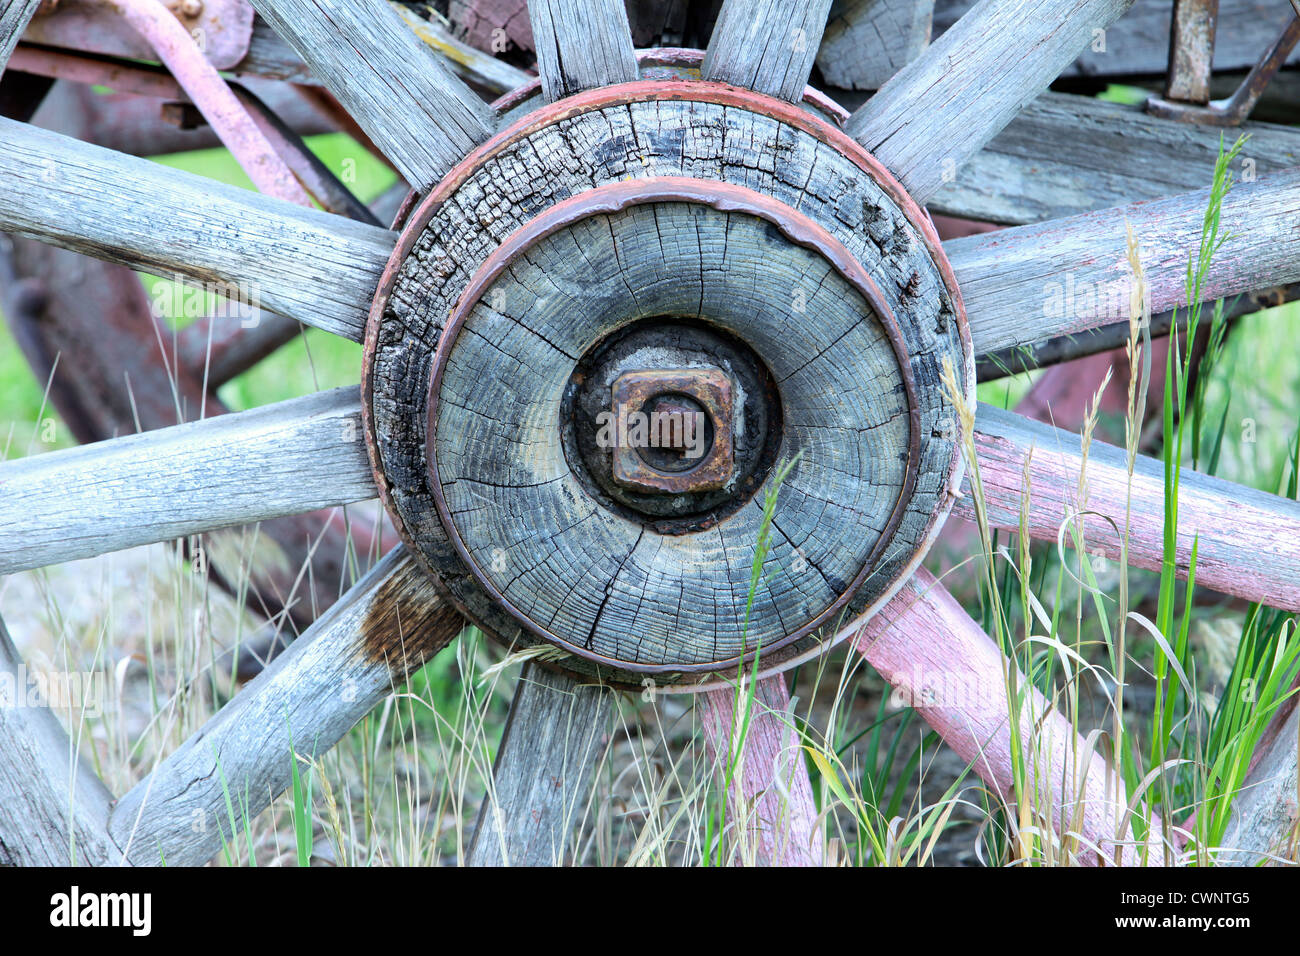 Old, antique wagon wheel with weathered wood and rusty metal